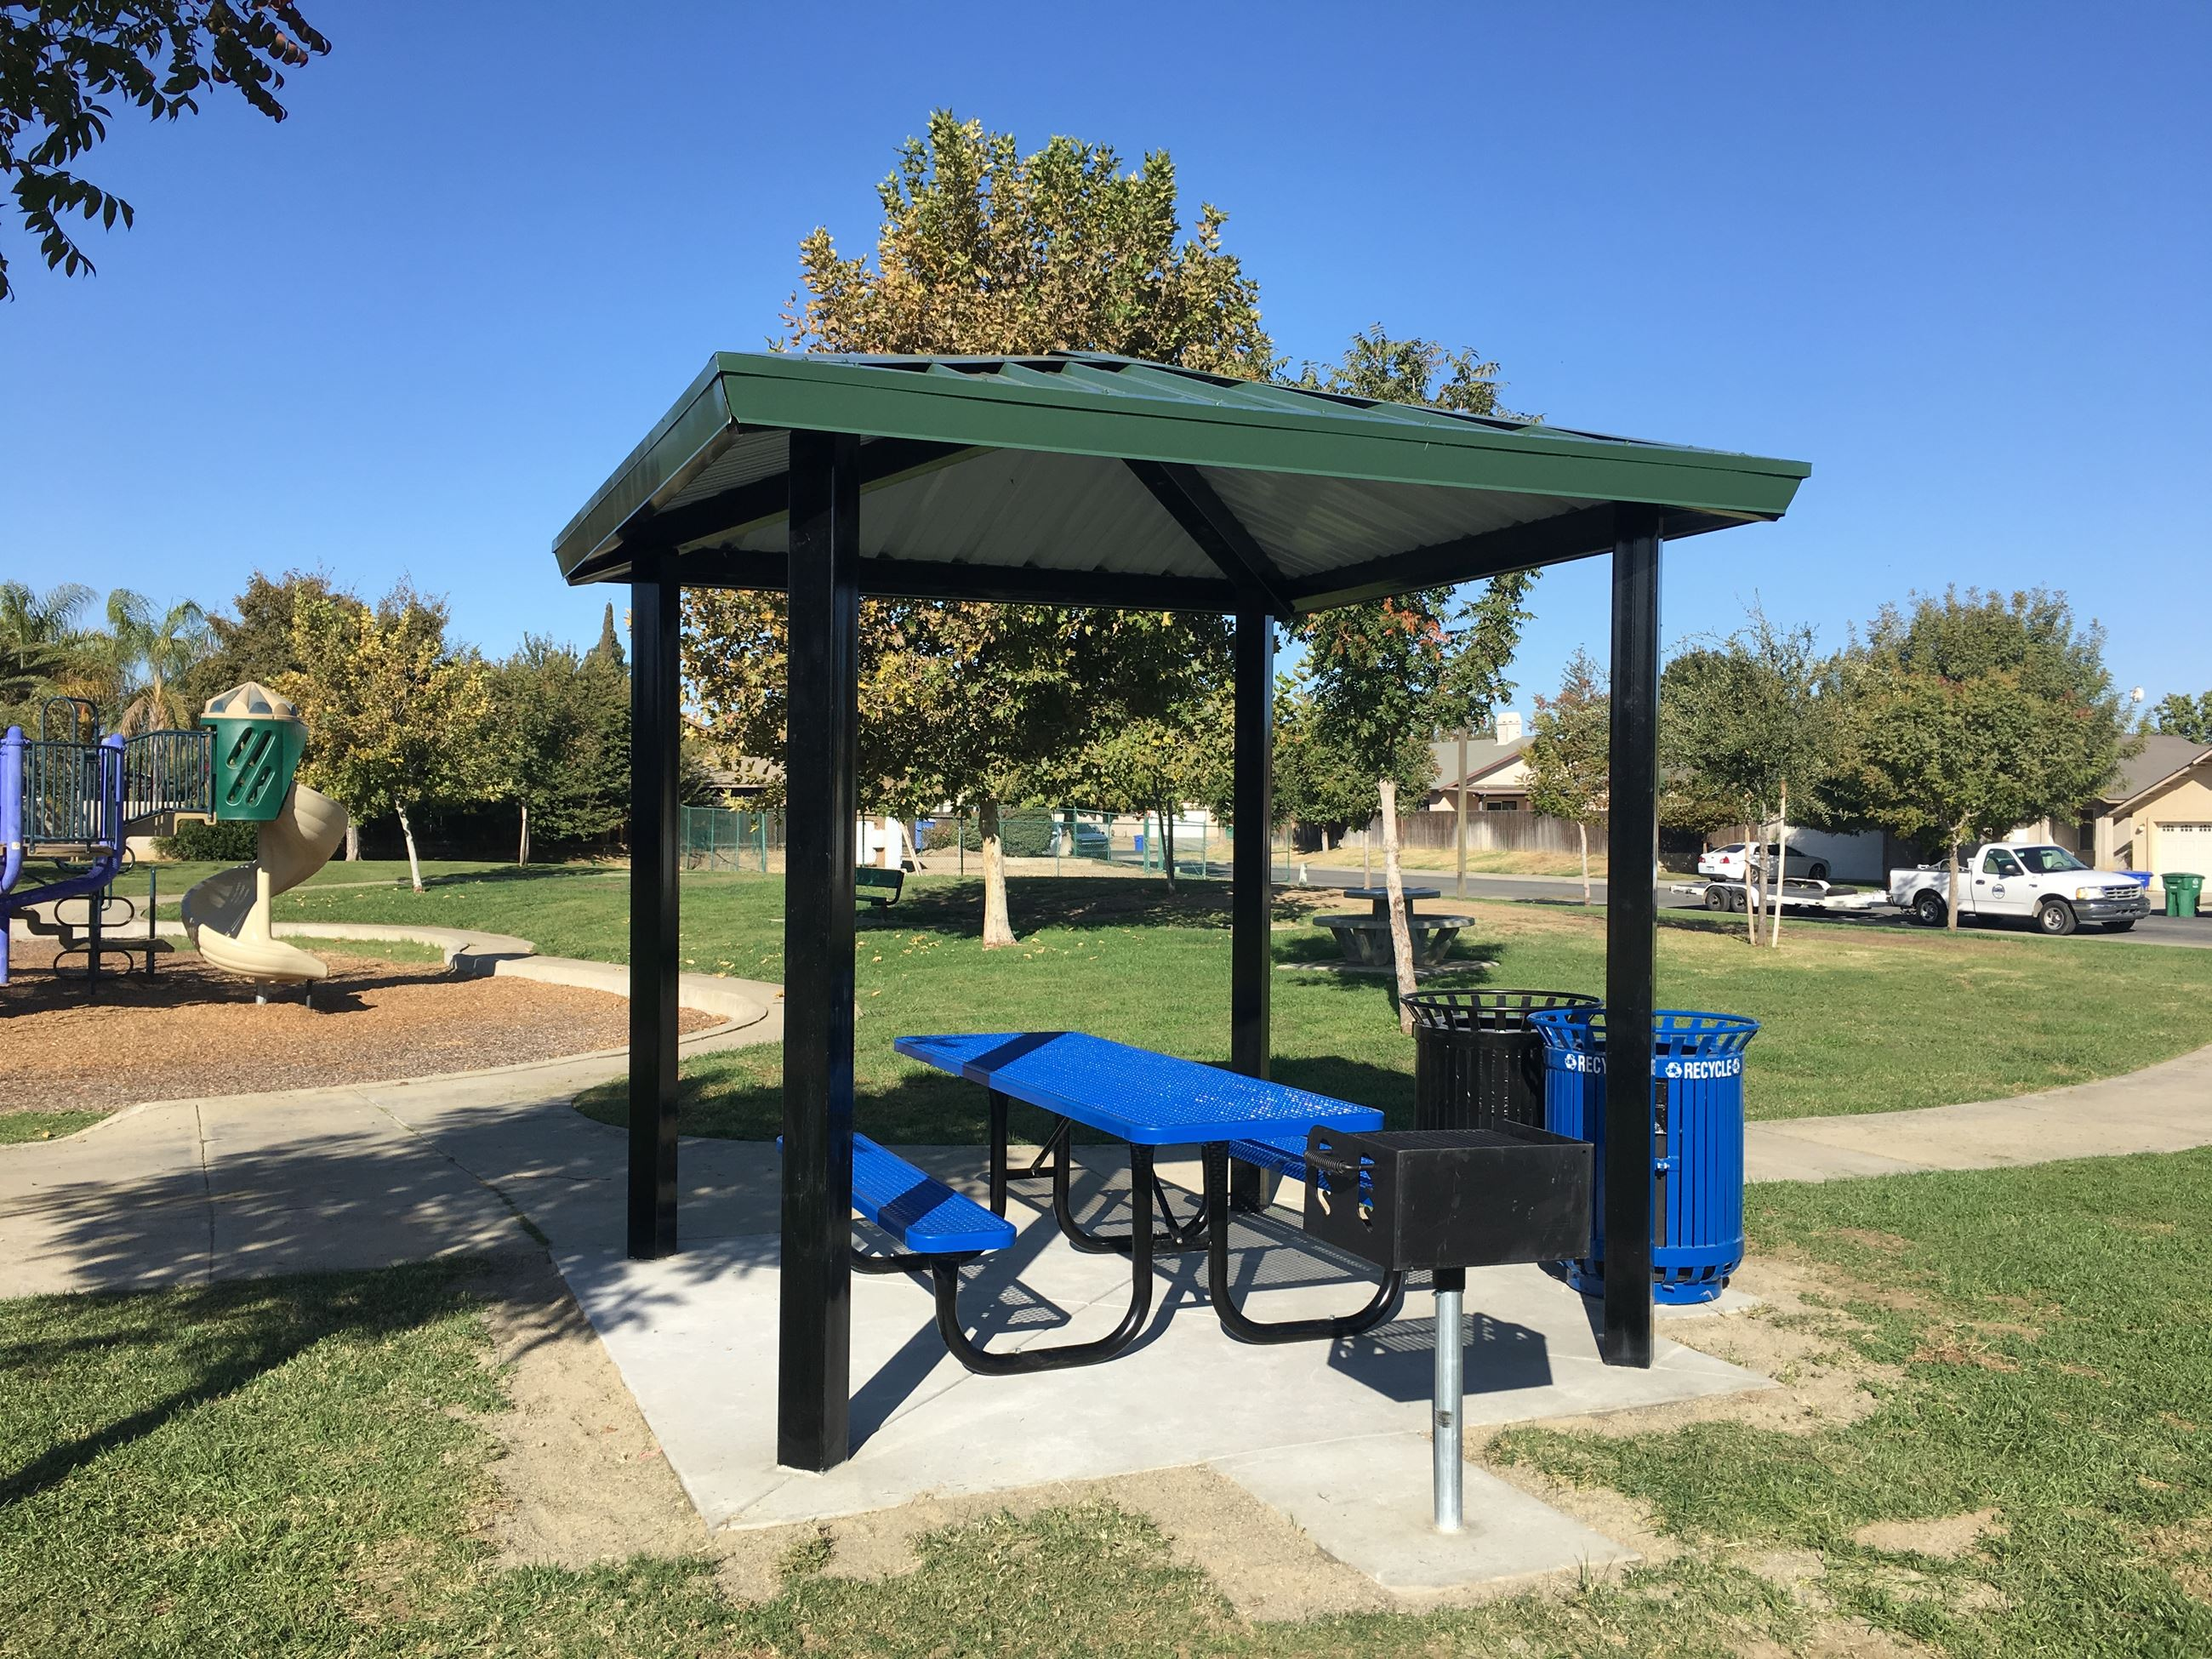 Sandalwood Park Awning  shade structure with 8ft table,bbq pit, and trash cans.